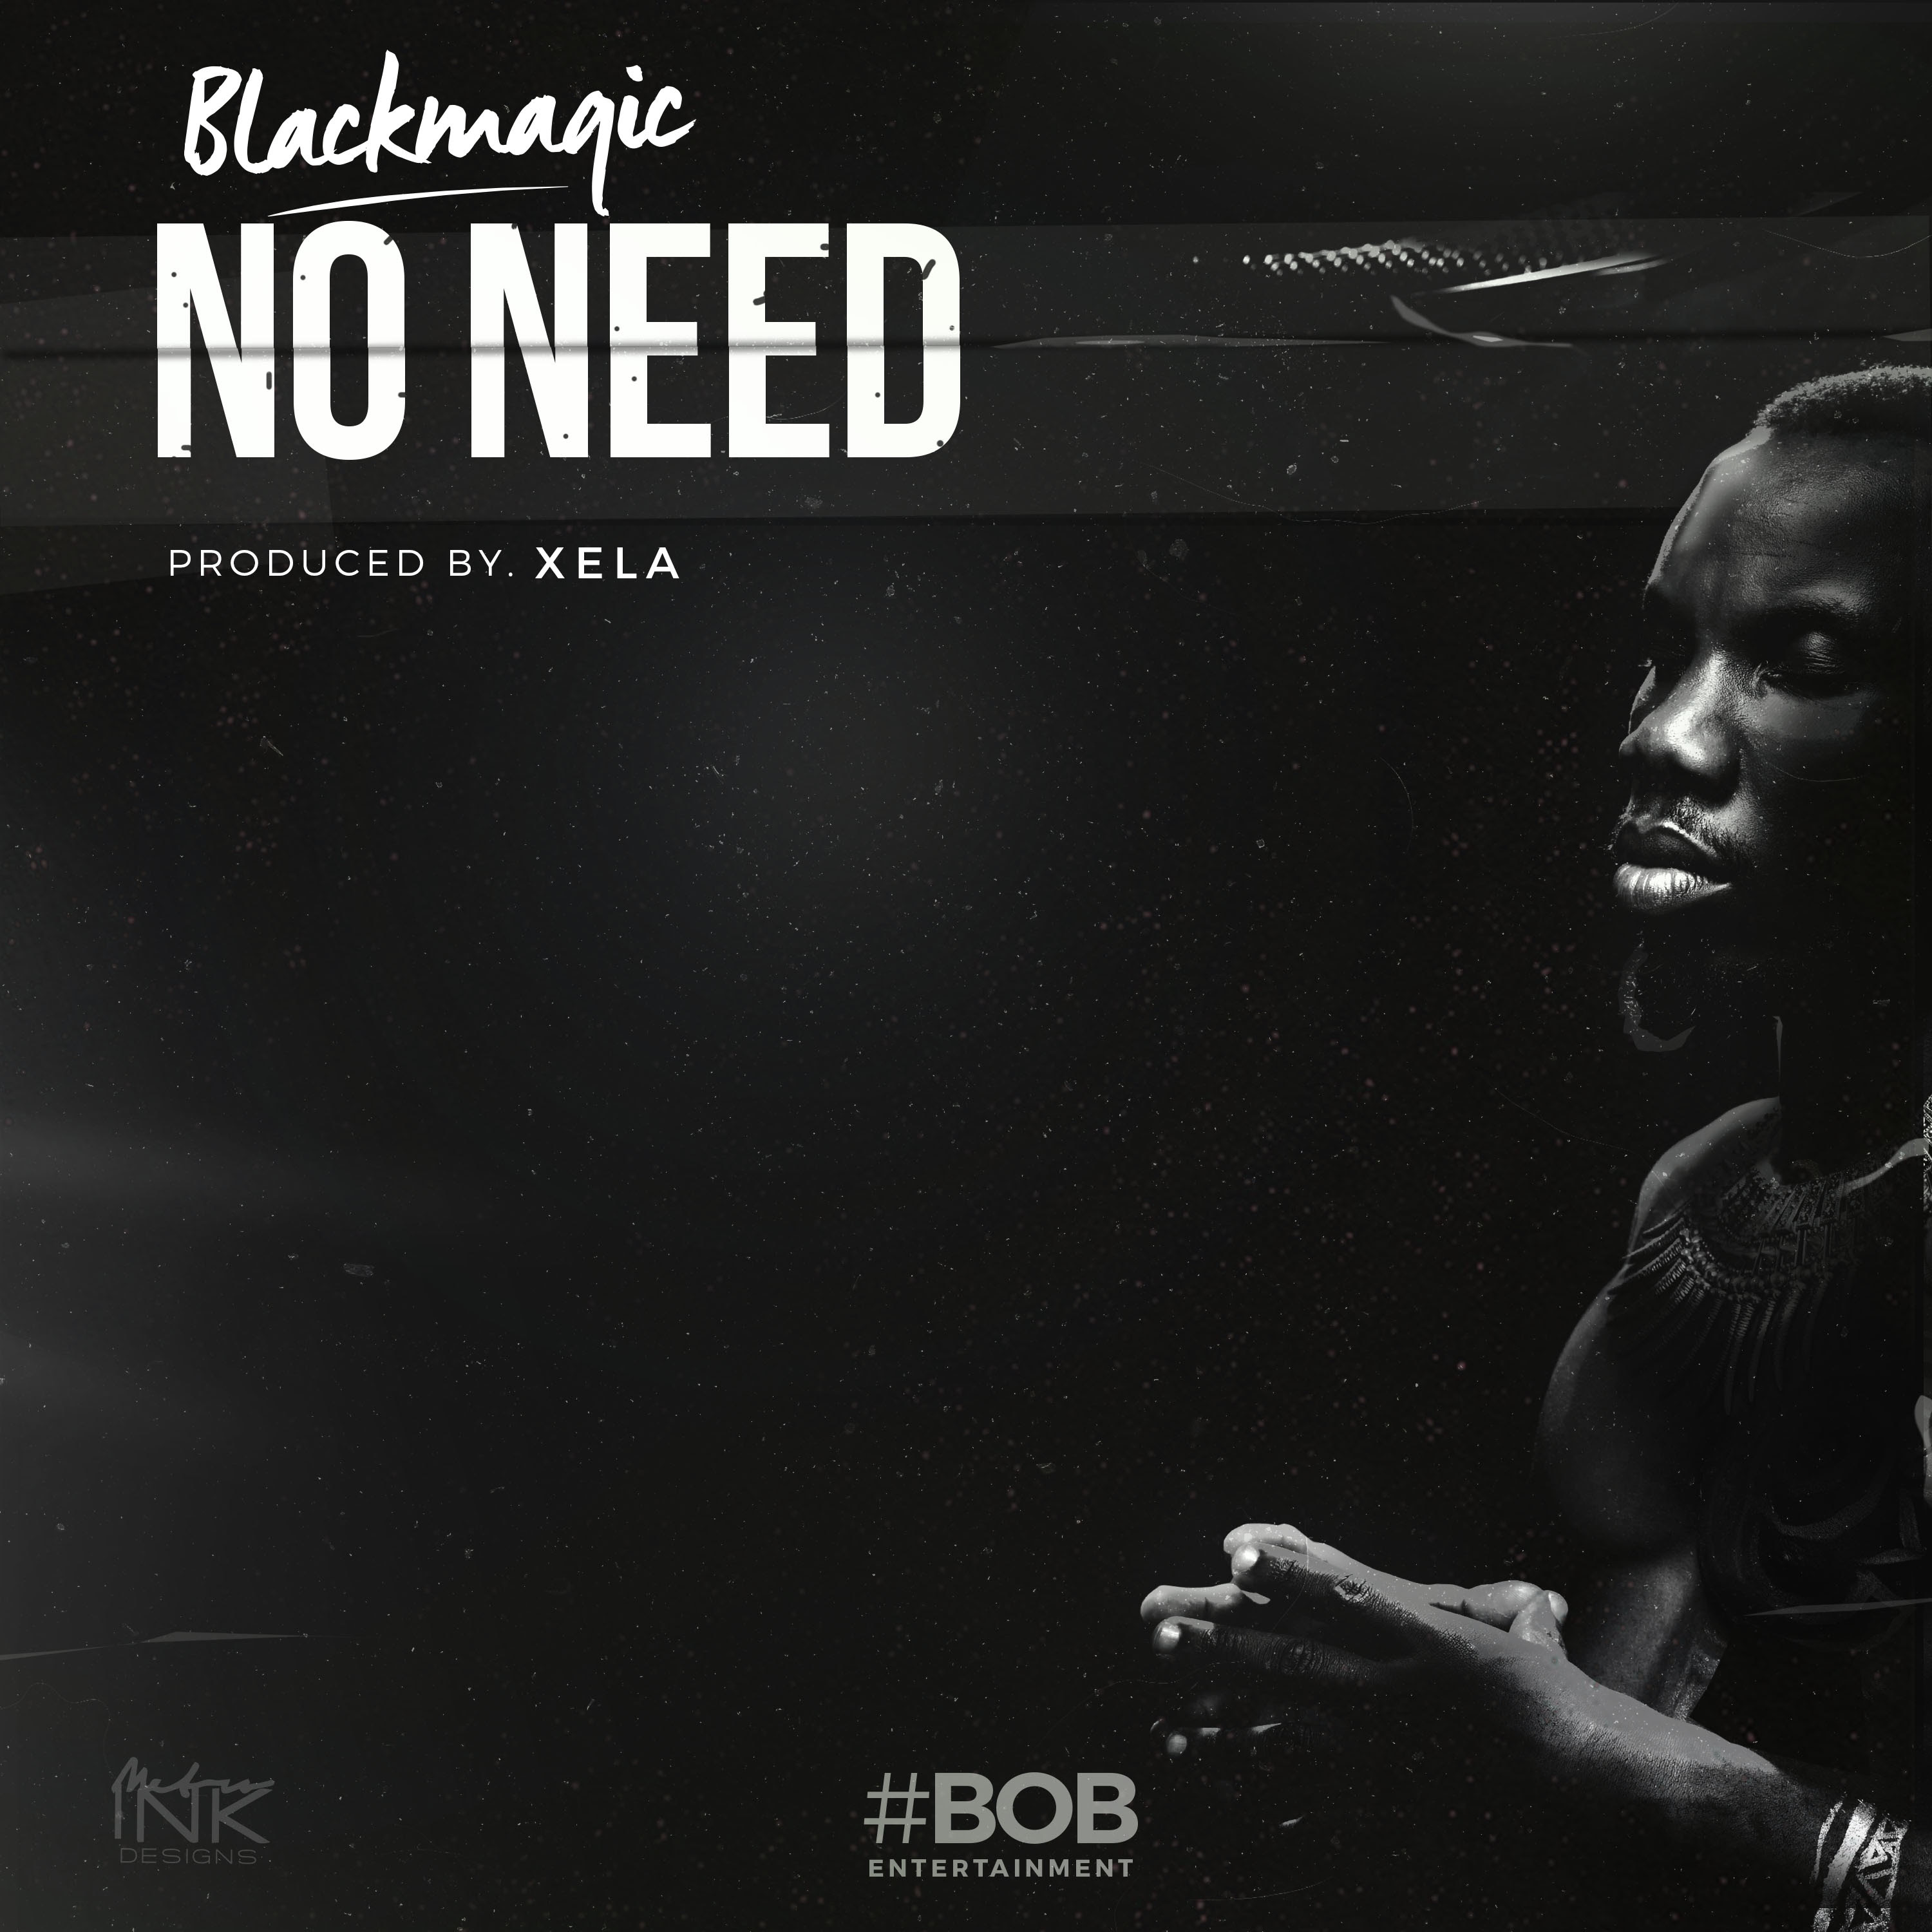 No Need Mp3 Song Djpunjab: DOWNLOAD MP3: Blackmagic - No Need